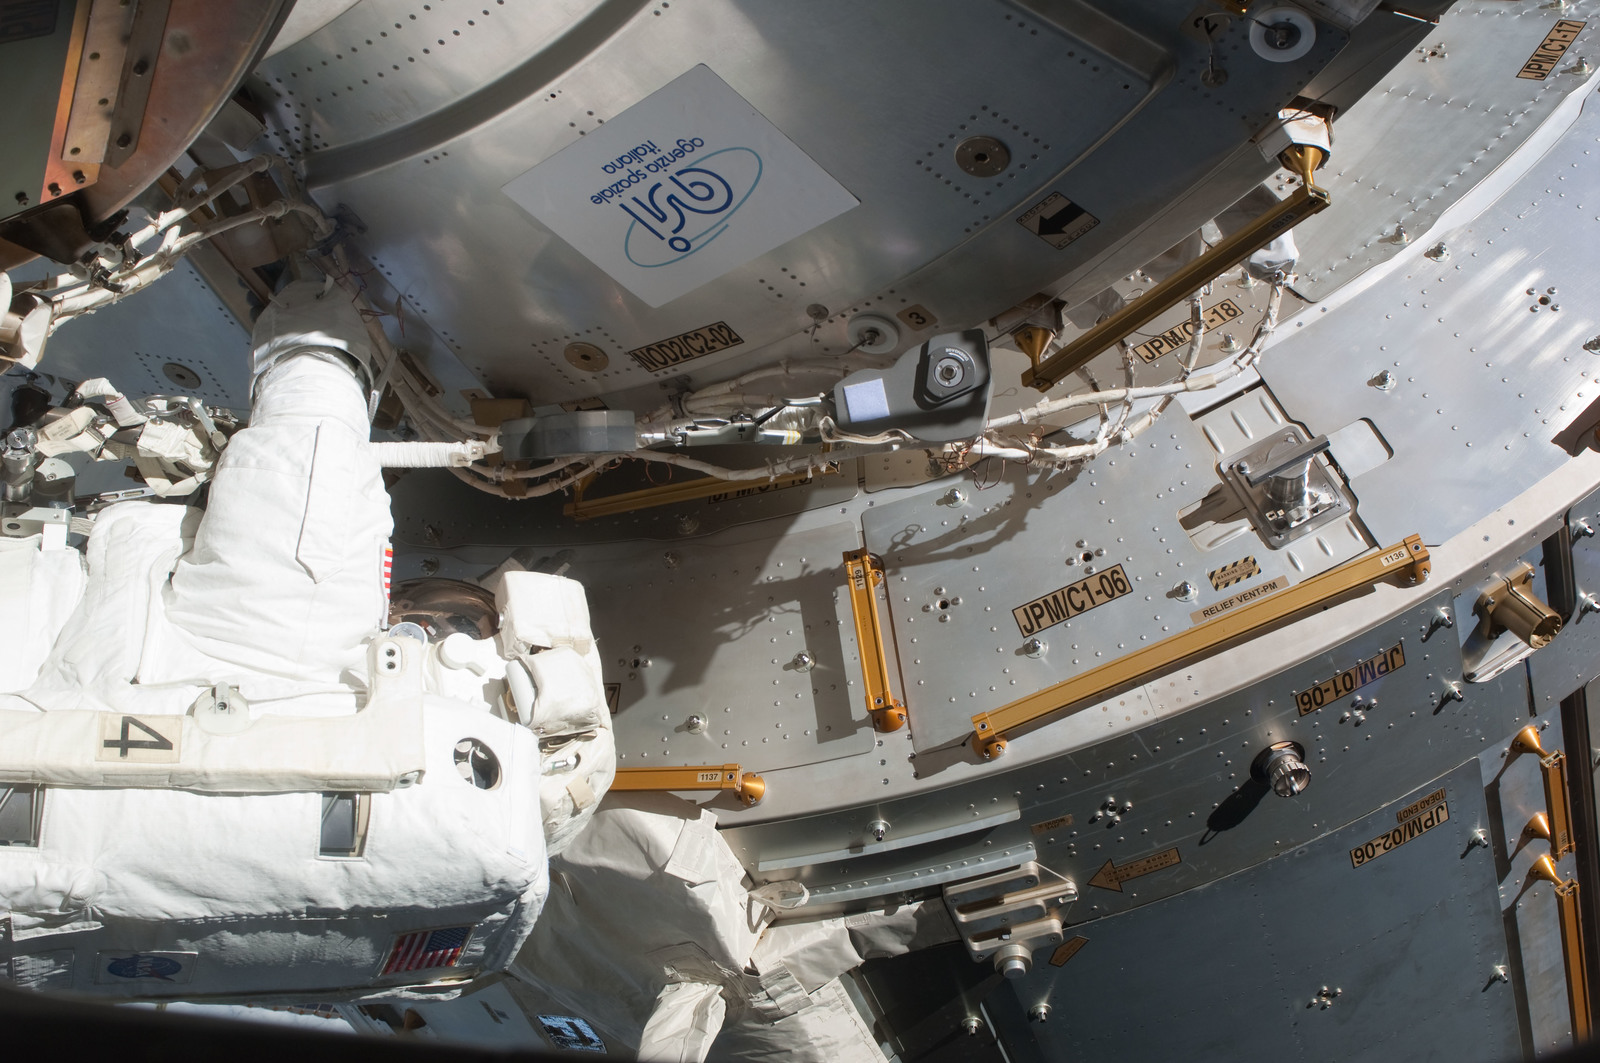 S127E006843 - STS-127 - Kopra at JPM during EVA-1 on STS-127 / Expedition 20 Joint Operations